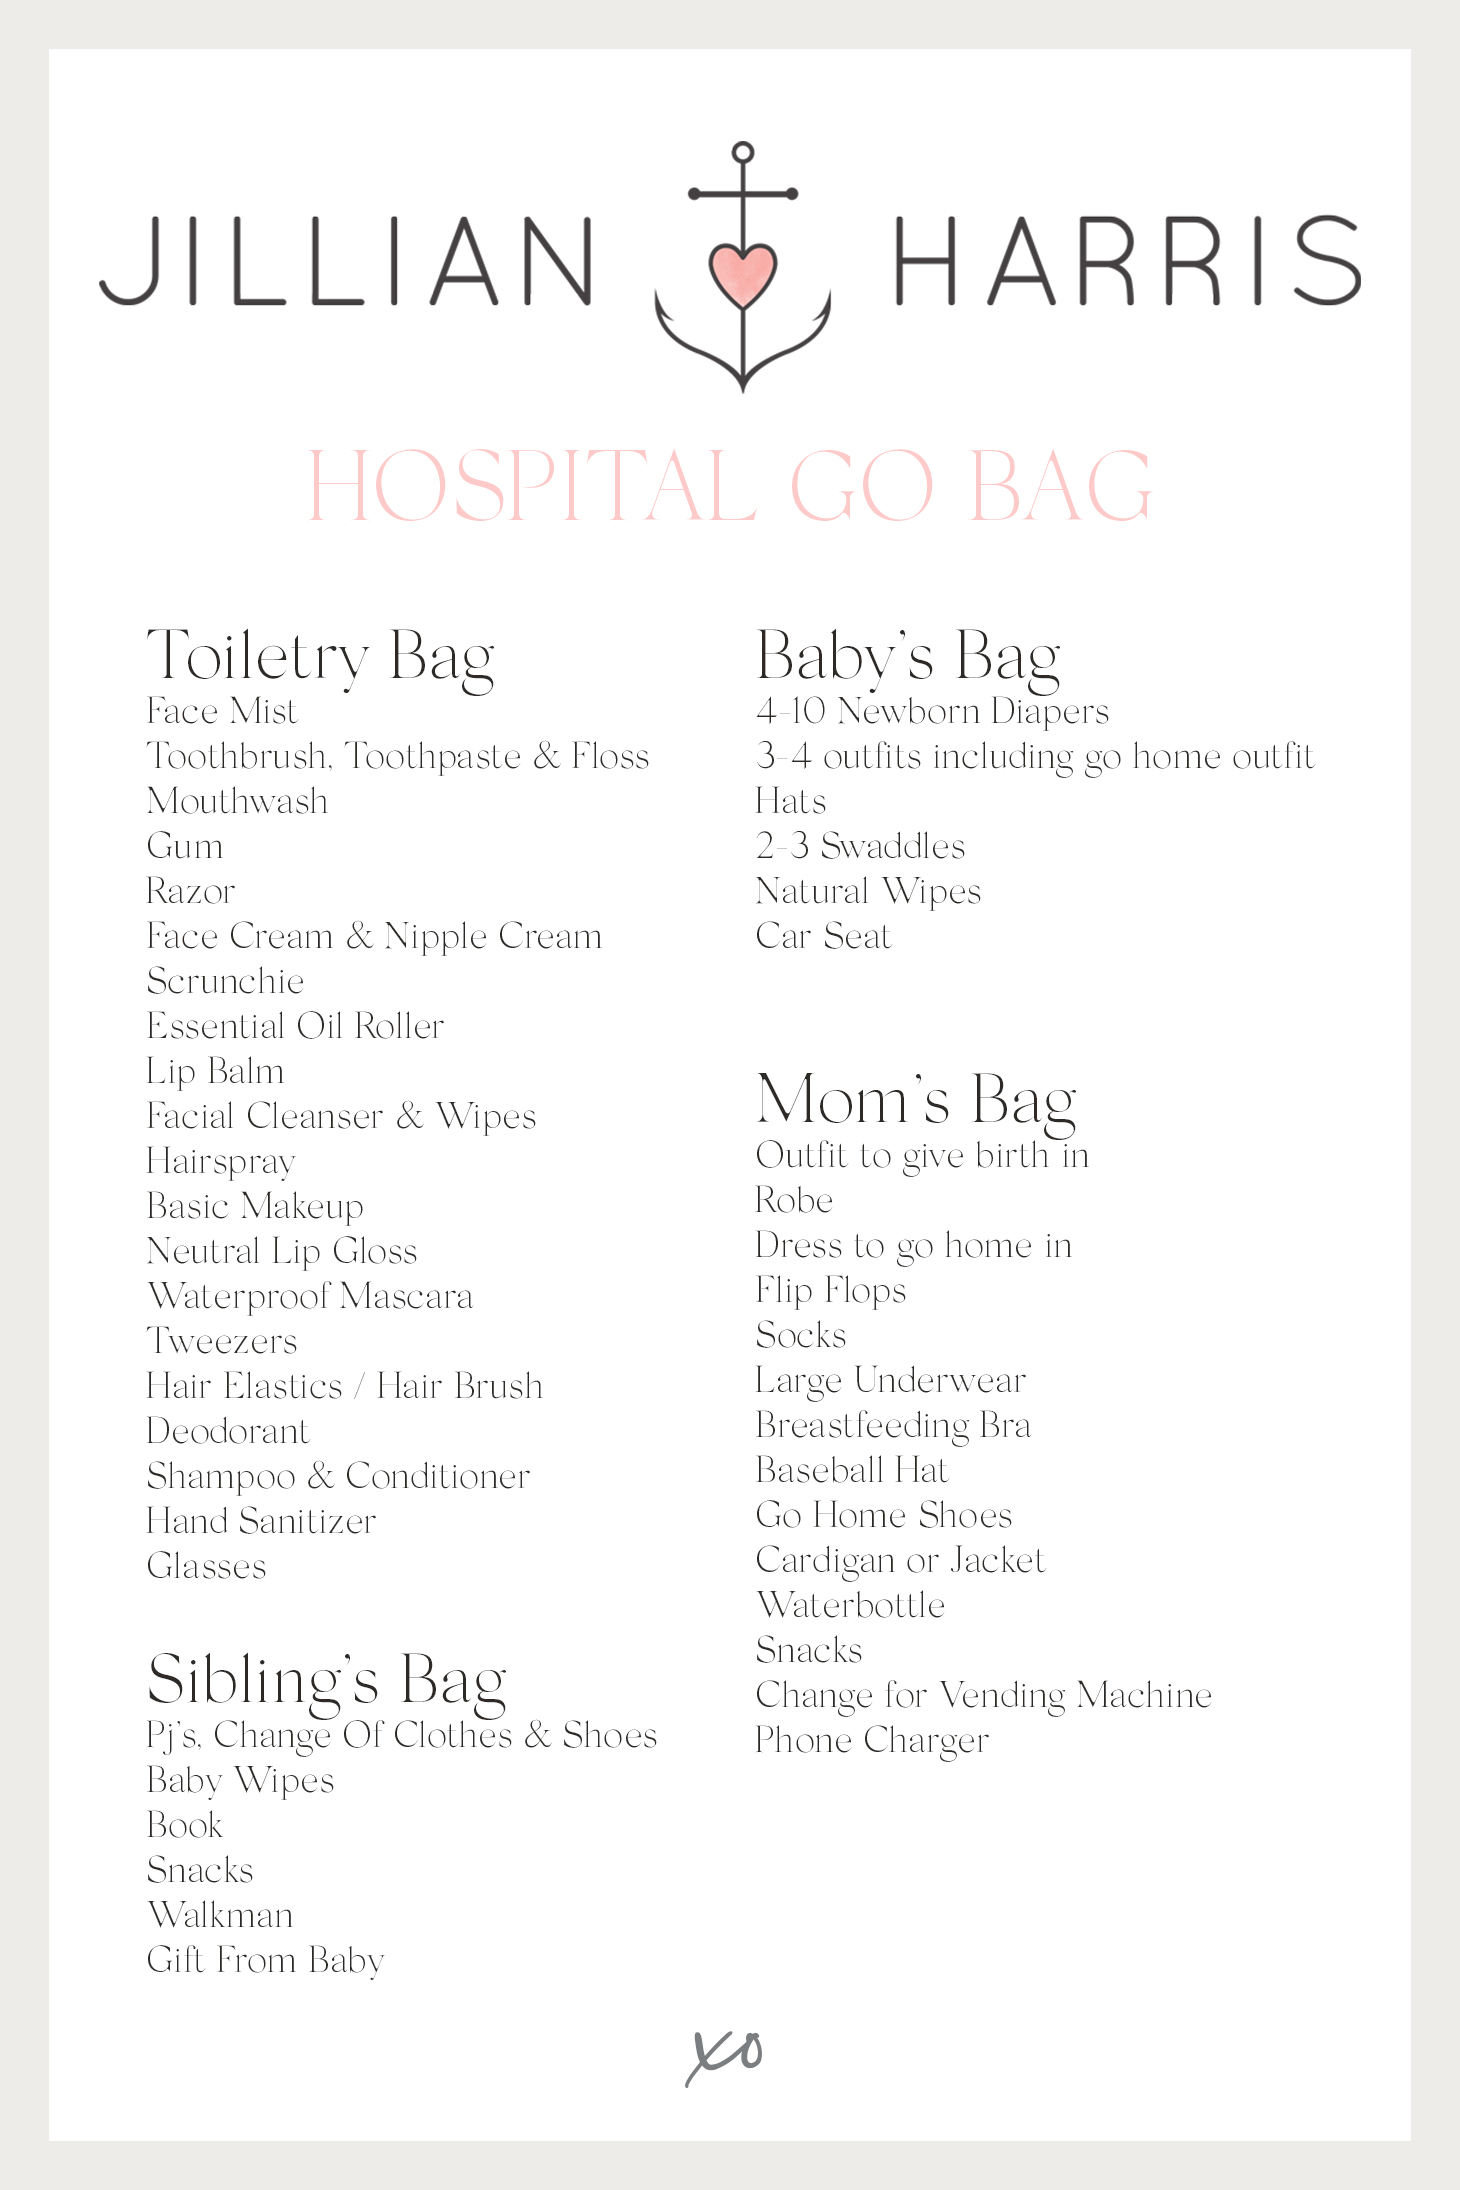 Jillian Harris Hospital Go Bag